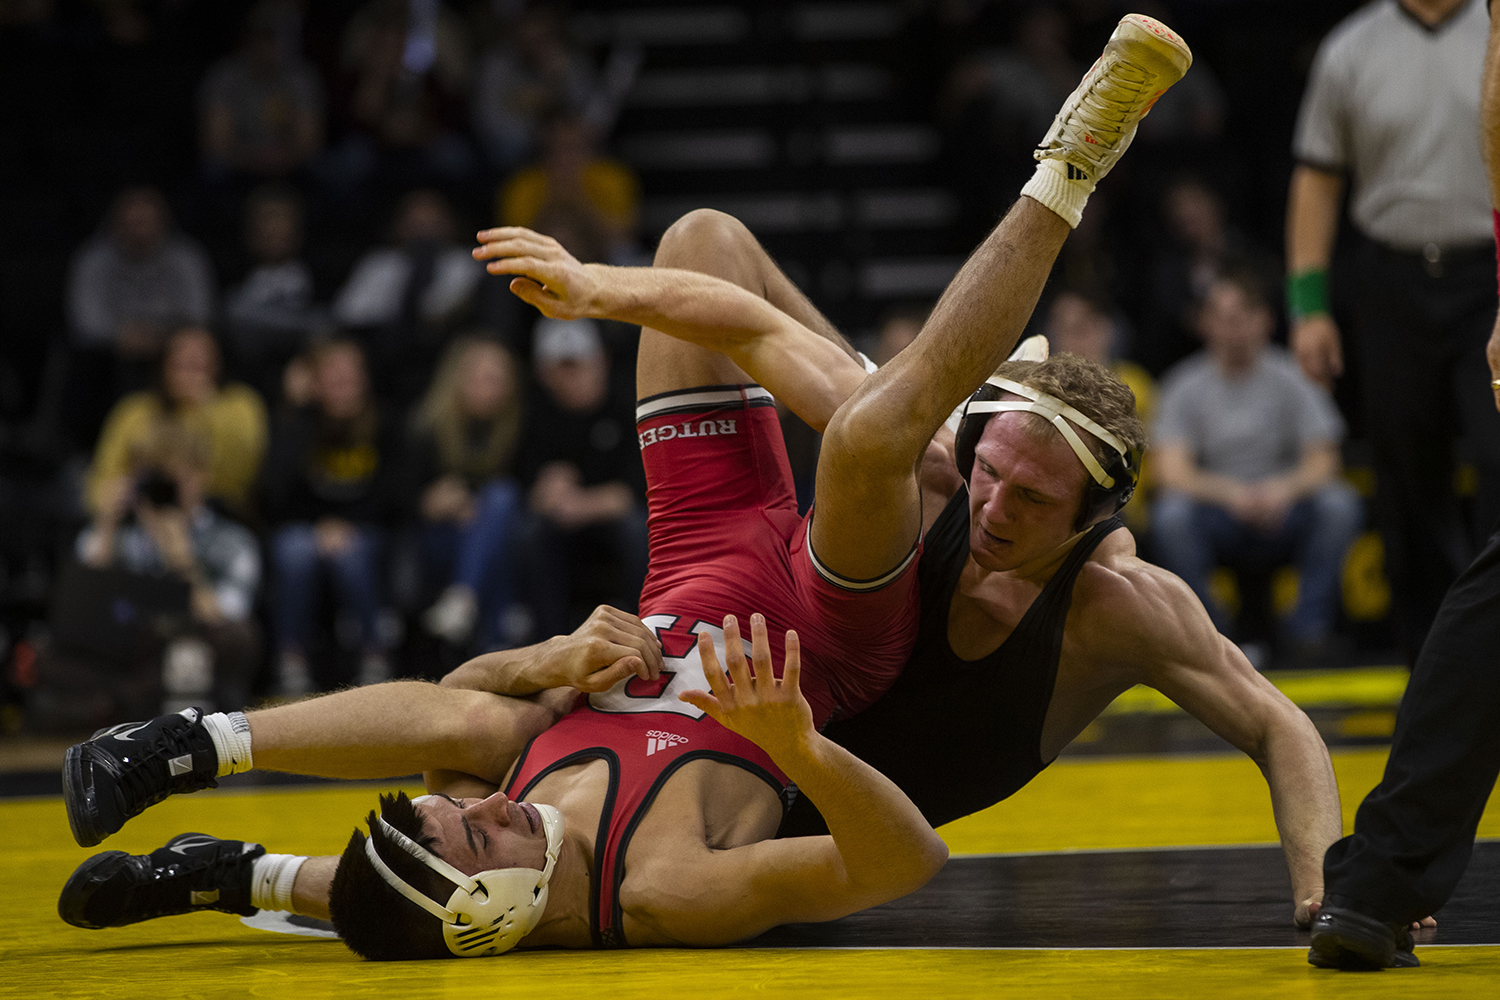 Iowa%27s+%235+Kaleb+Young+wrestles+Rutgers%27+%2314+John+Van+Brill+during+the+Iowa%2FRutgers+wrestling+meet+at+Carver-Hawkeye+Arena+on+Friday%2C+January+18%2C+2019.+Young+defeated%2C+3-0.+The+Hawkeyes+defeated+the+Scarlet+Knights%2C+30-6.+